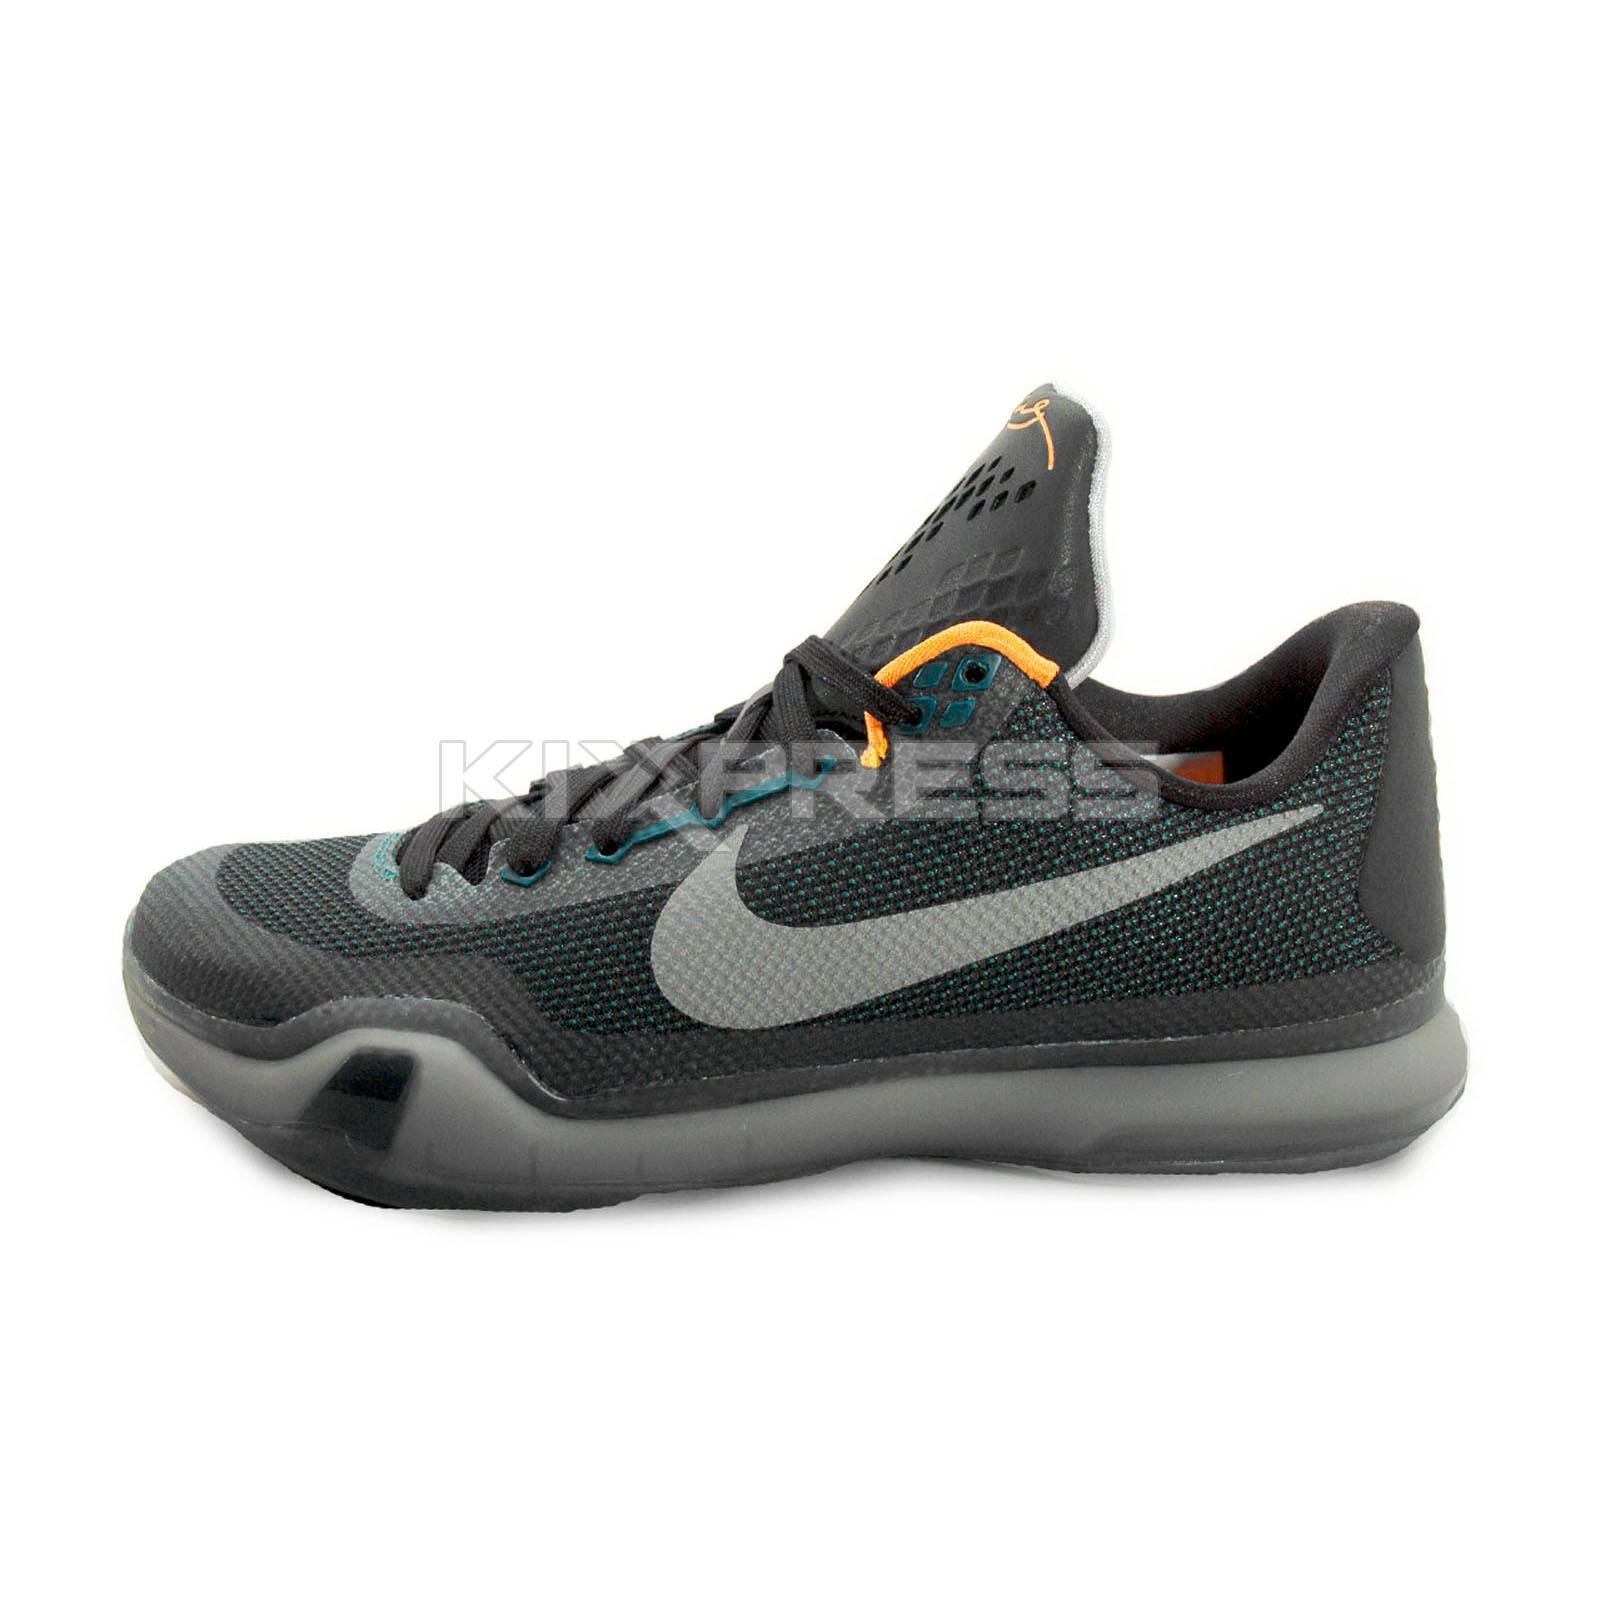 Nike - x pe [745334-308] basket volo pack till / argento nero grigio verde / rflct silver-blck-wlf gry